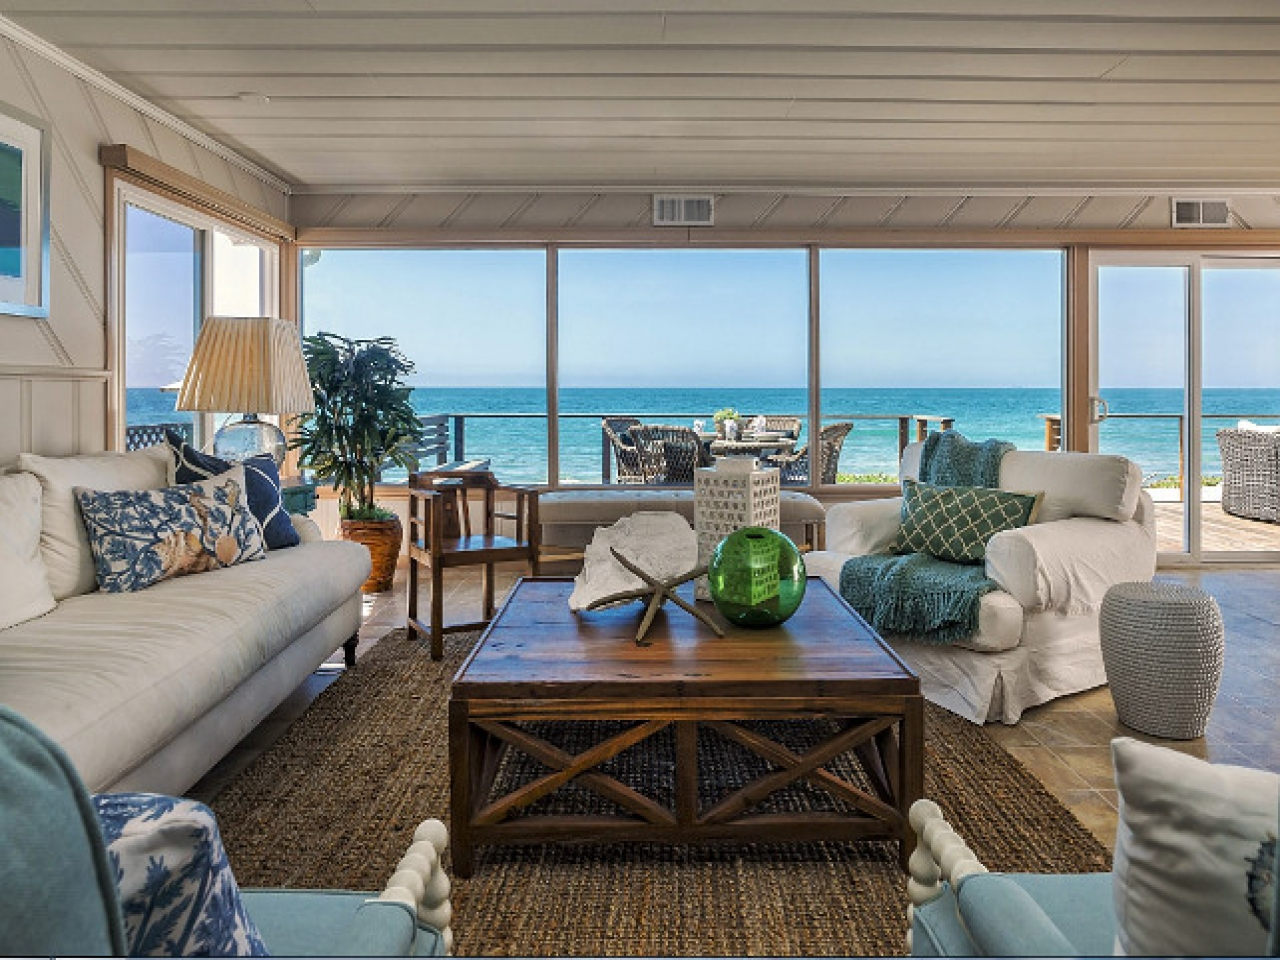 Beach House Interior Design Photos: Interior Beach House Decor Living Room Ocean Beach House